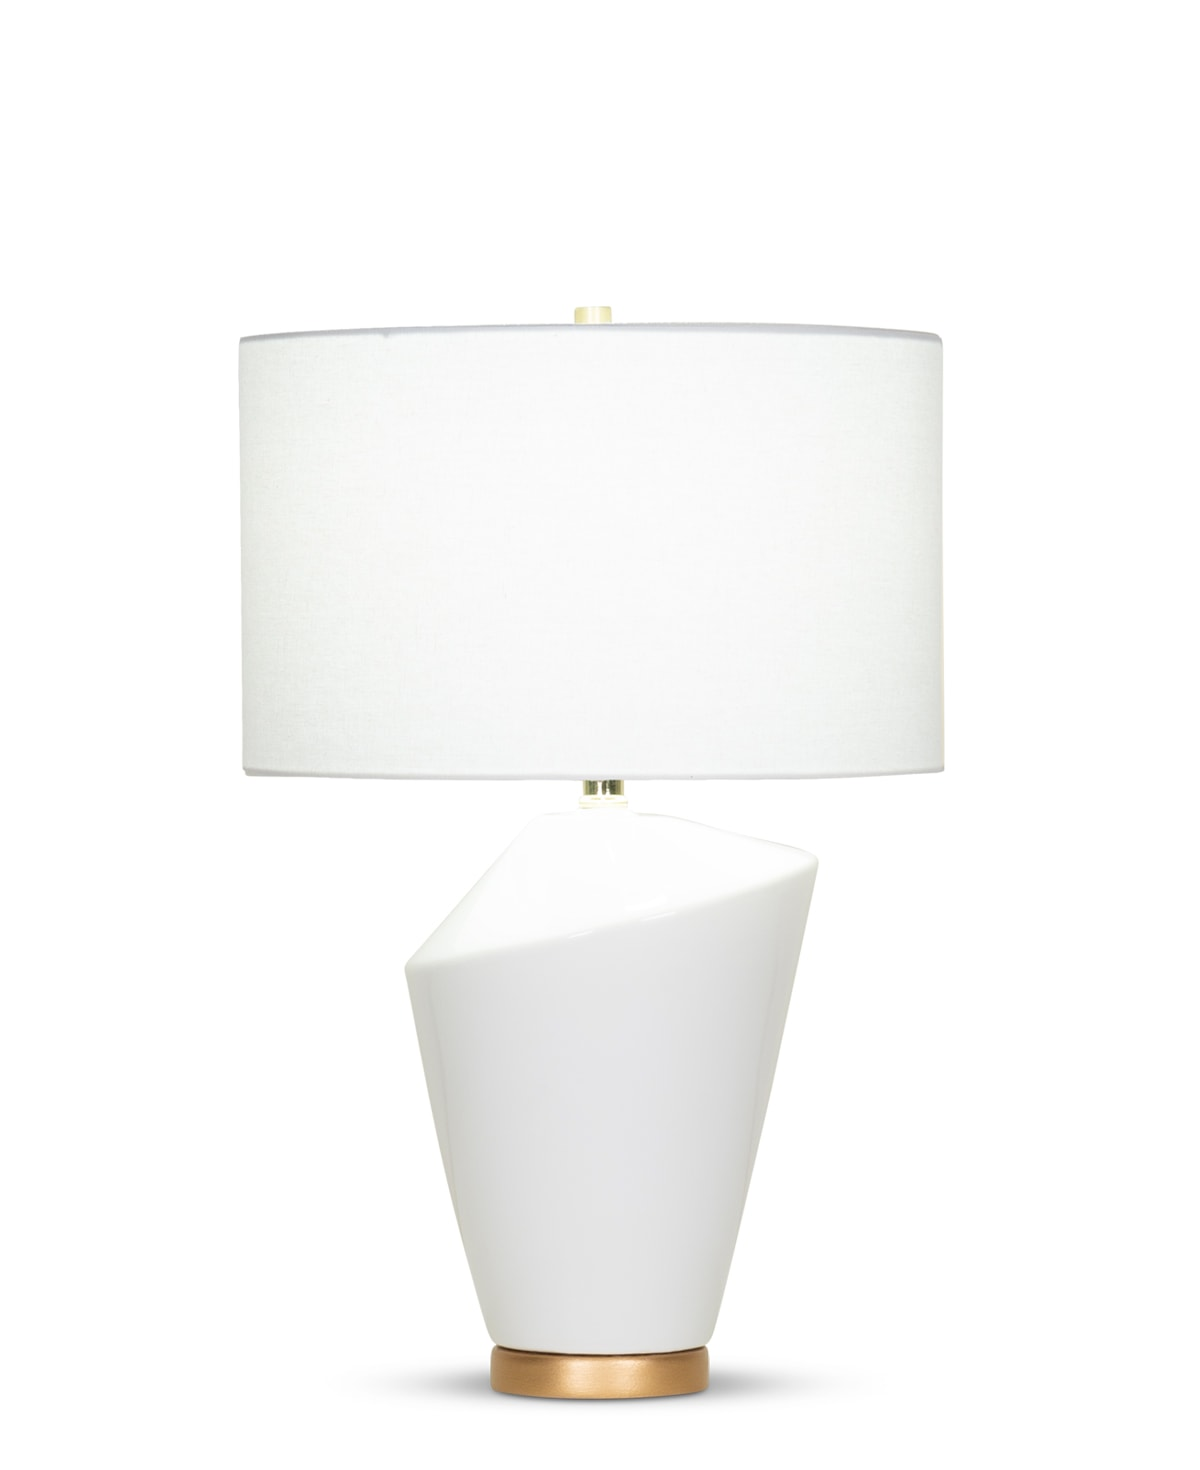 FlowDecor Emery Table Lamp in ceramic with off-white finish and resin base with gold finish and off-white linen drum shade (# 4372)